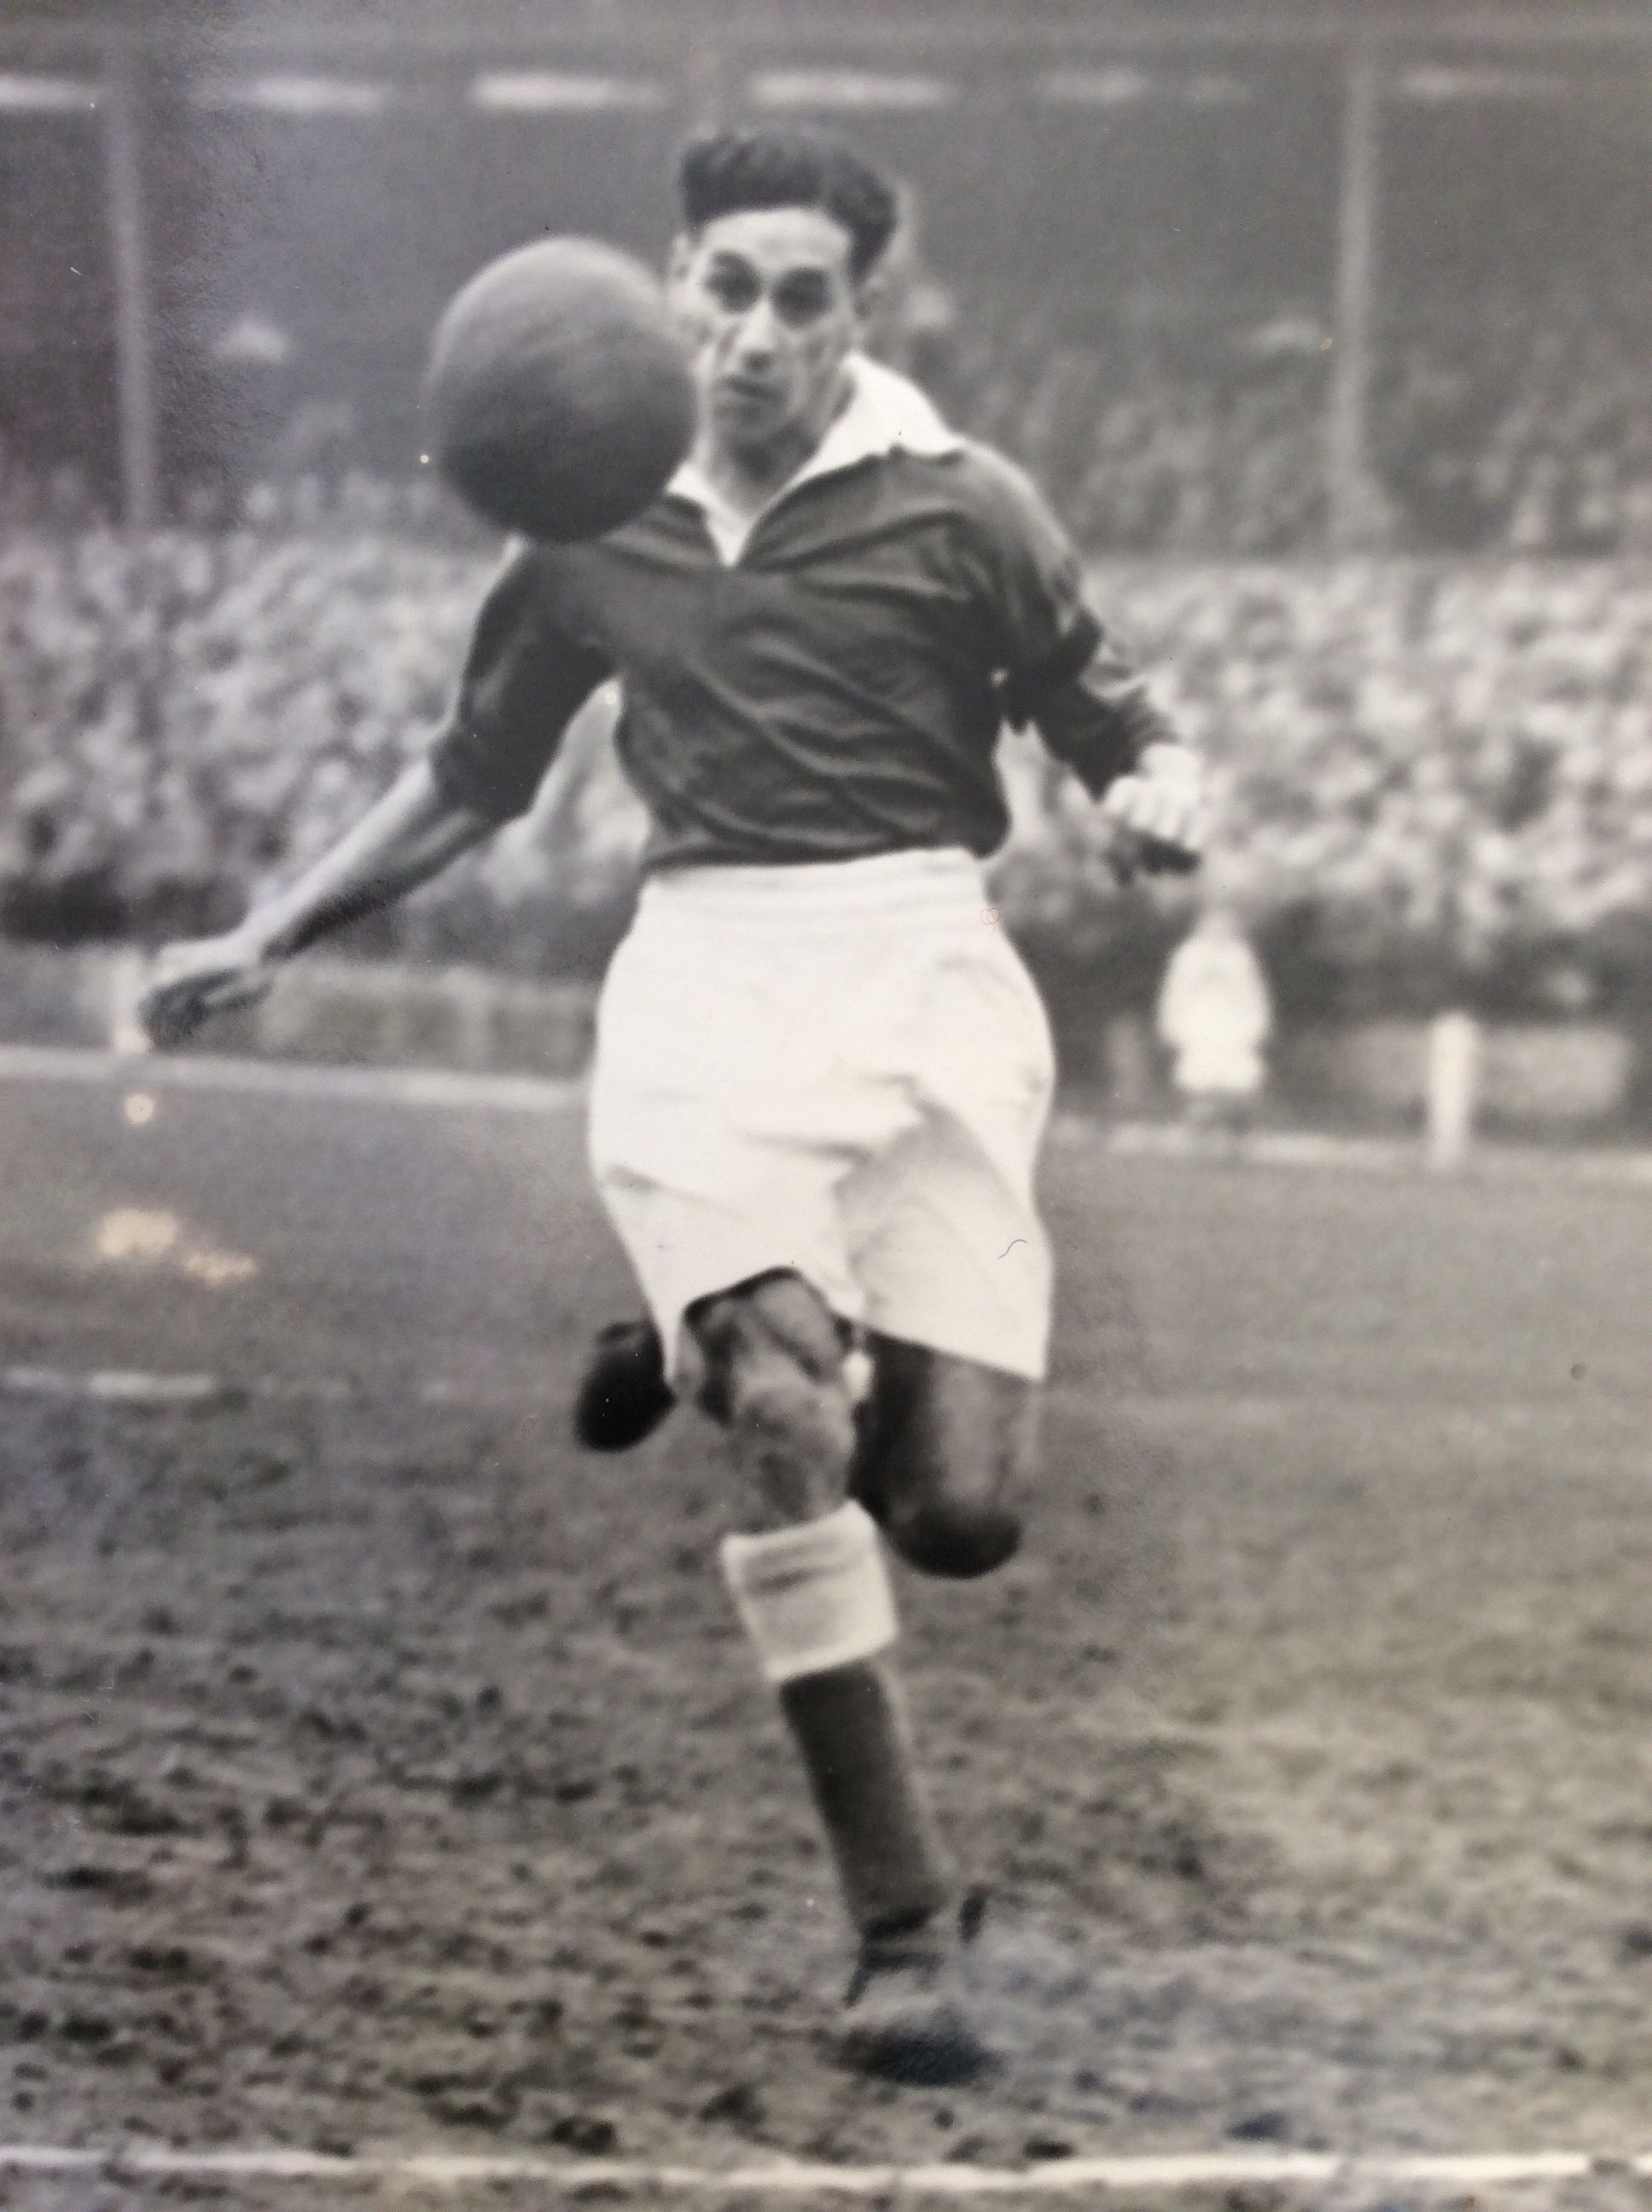 Collins played for seven clubs during his professional career.